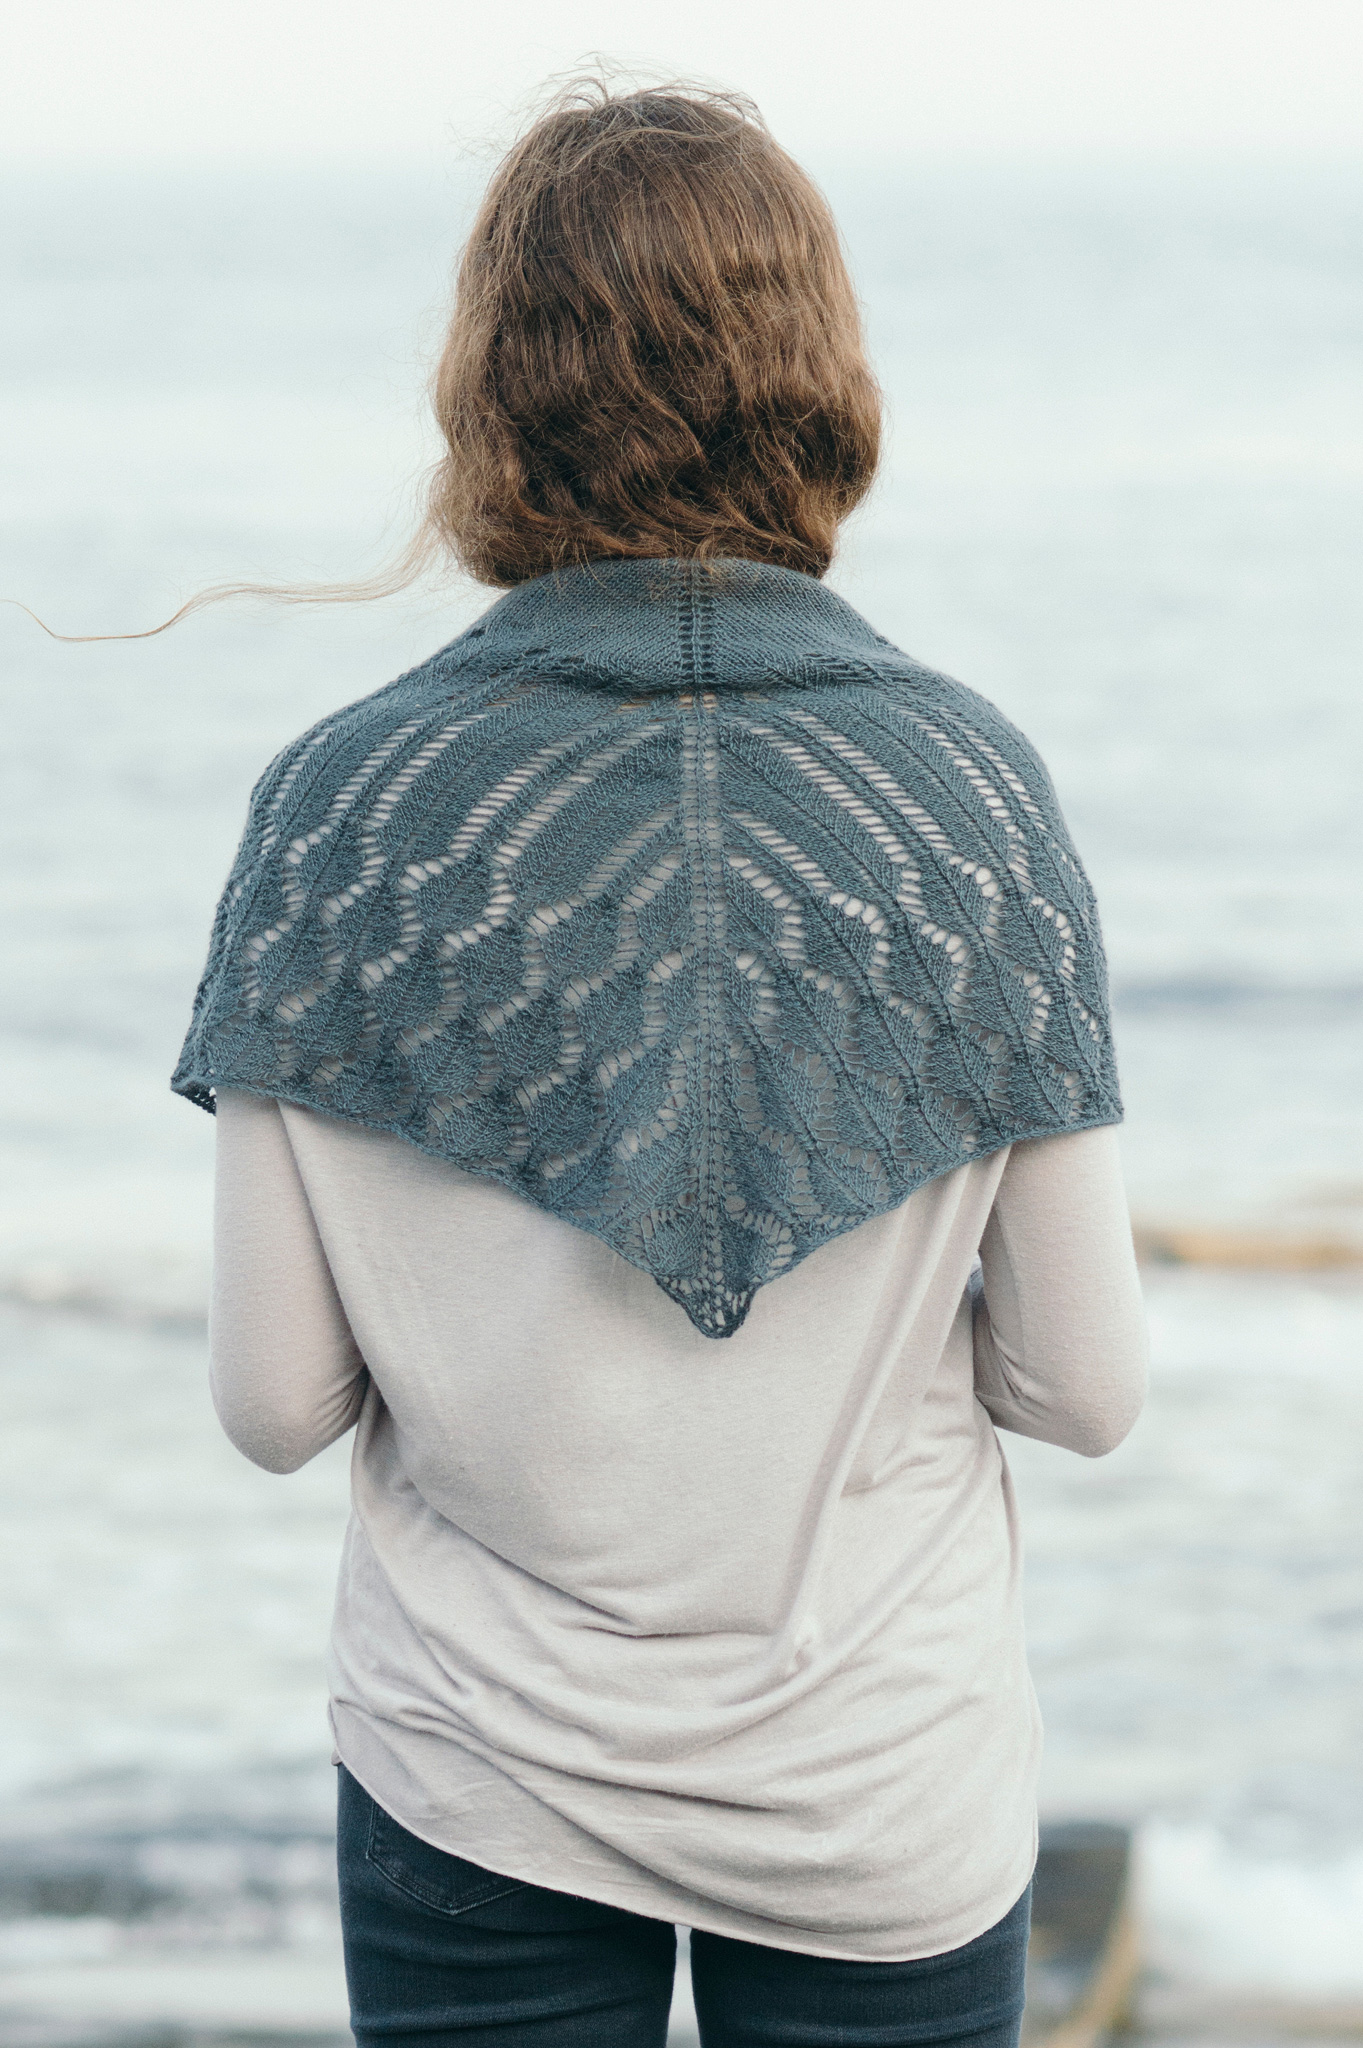 quince-co-tributary-leah-b-thibault-knitting-pattern-piper-2.jpg